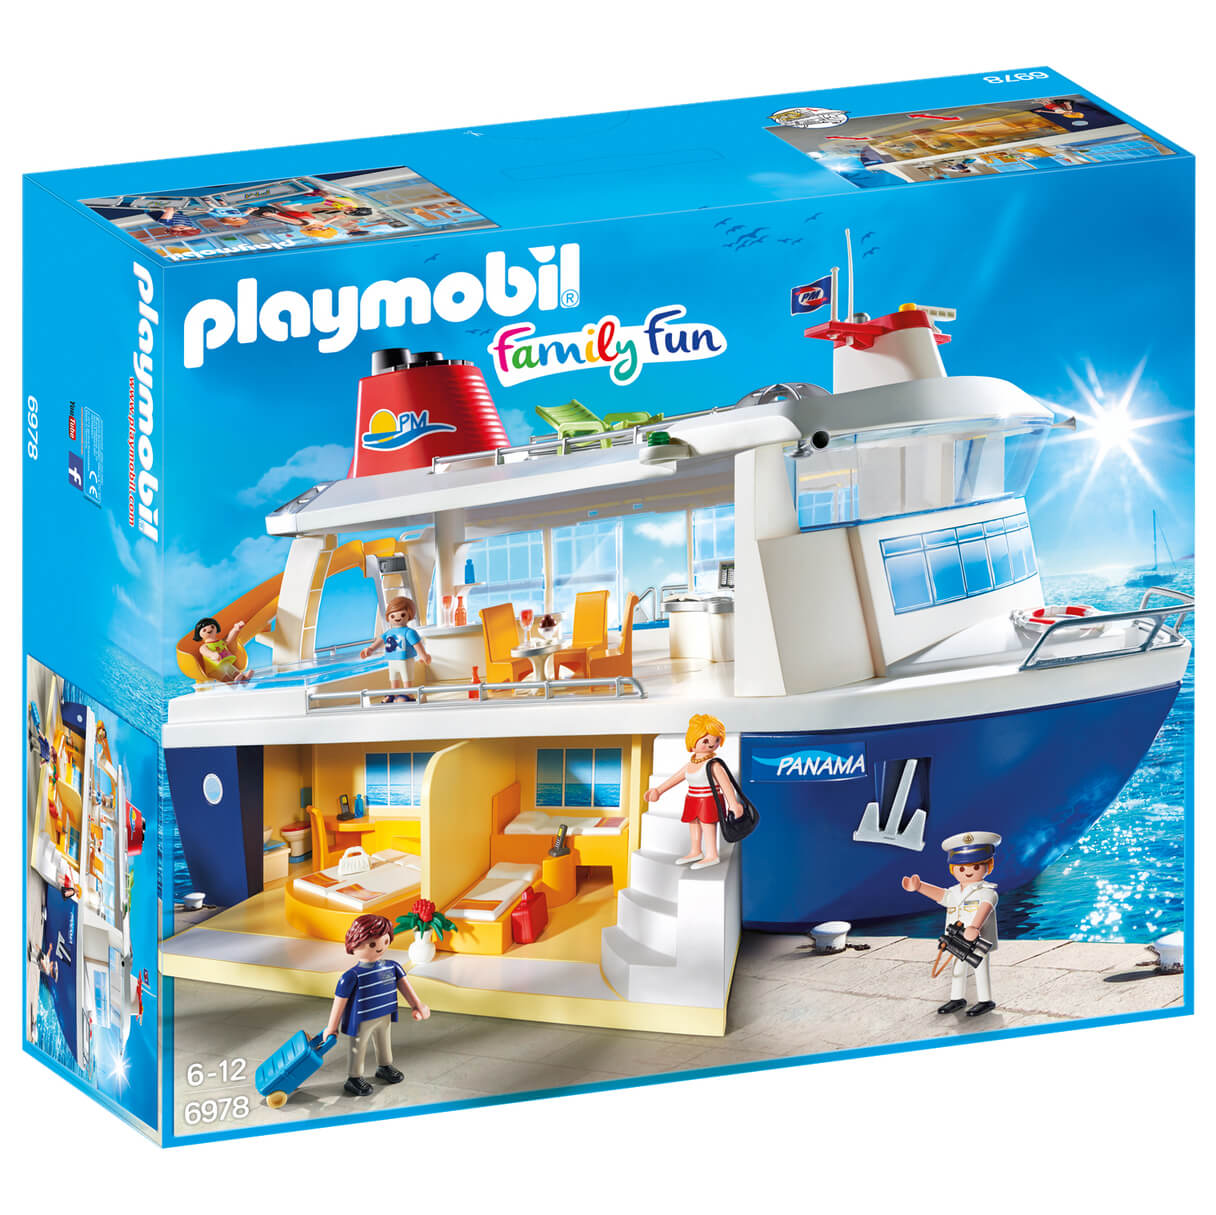 Playmobil Family Fun Cruise Ship (6978)